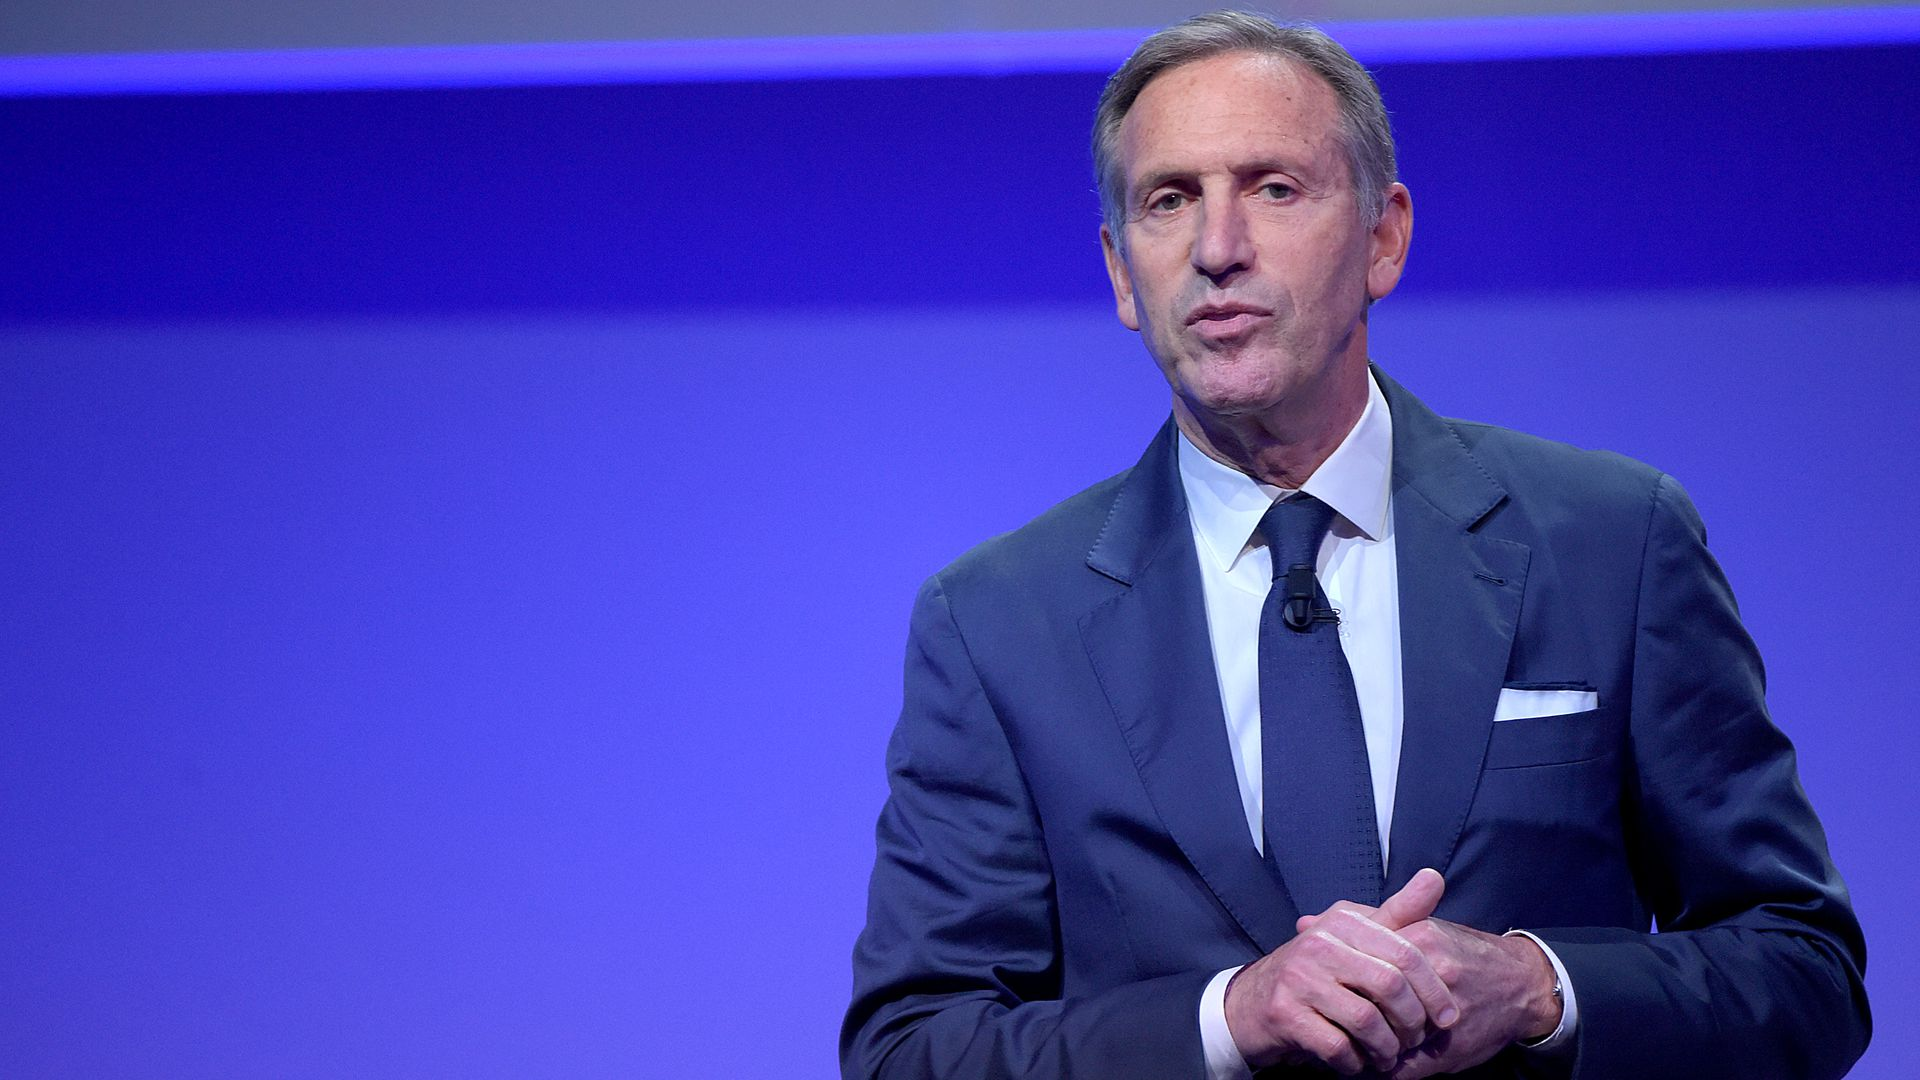 Howard Schultz, former Starbucks CEO.